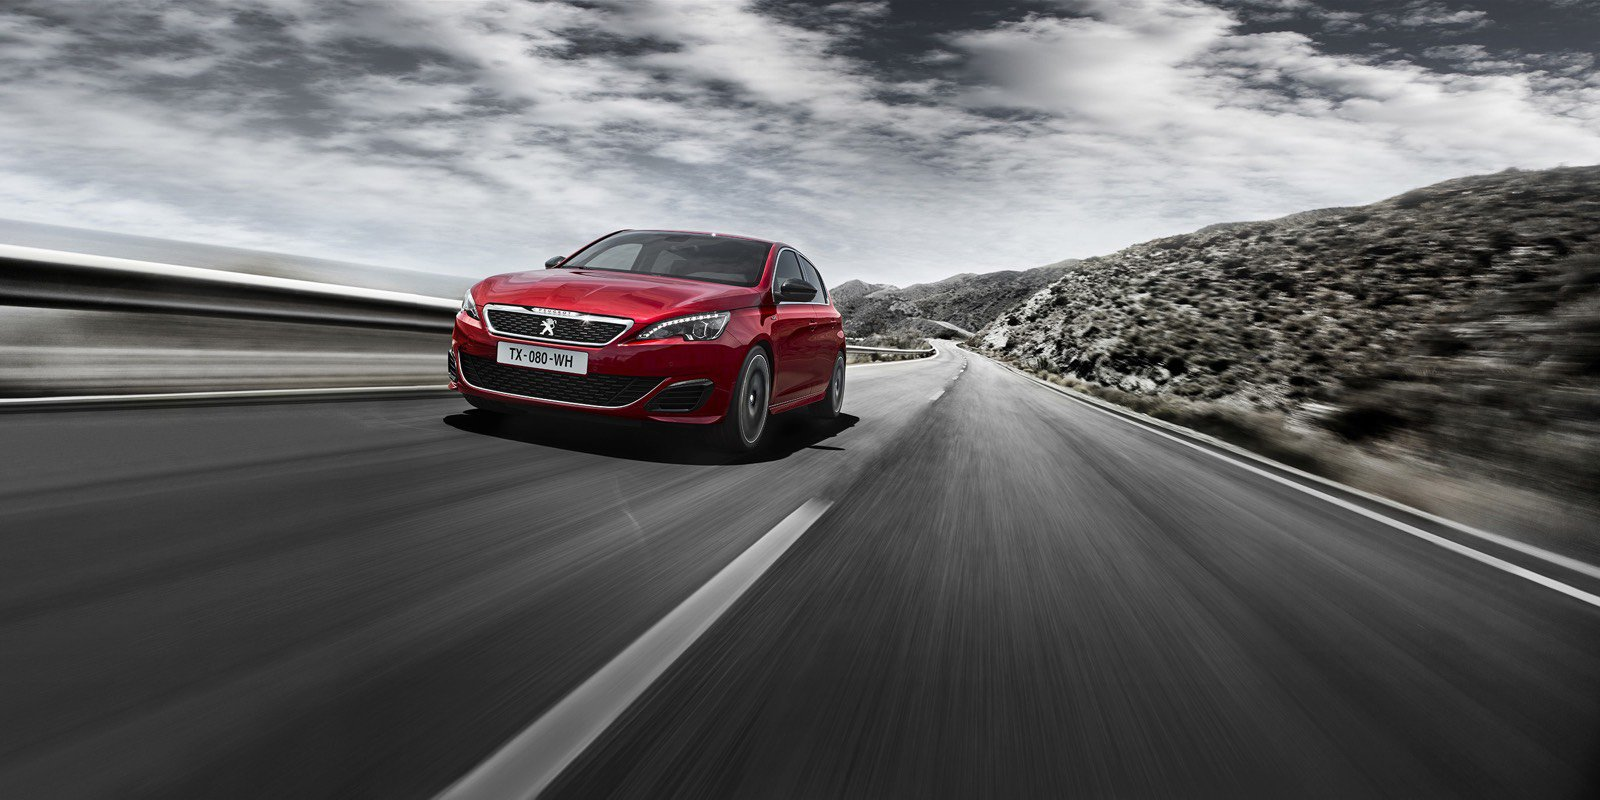 Take A Look At The Peugeot 308 GTi 1